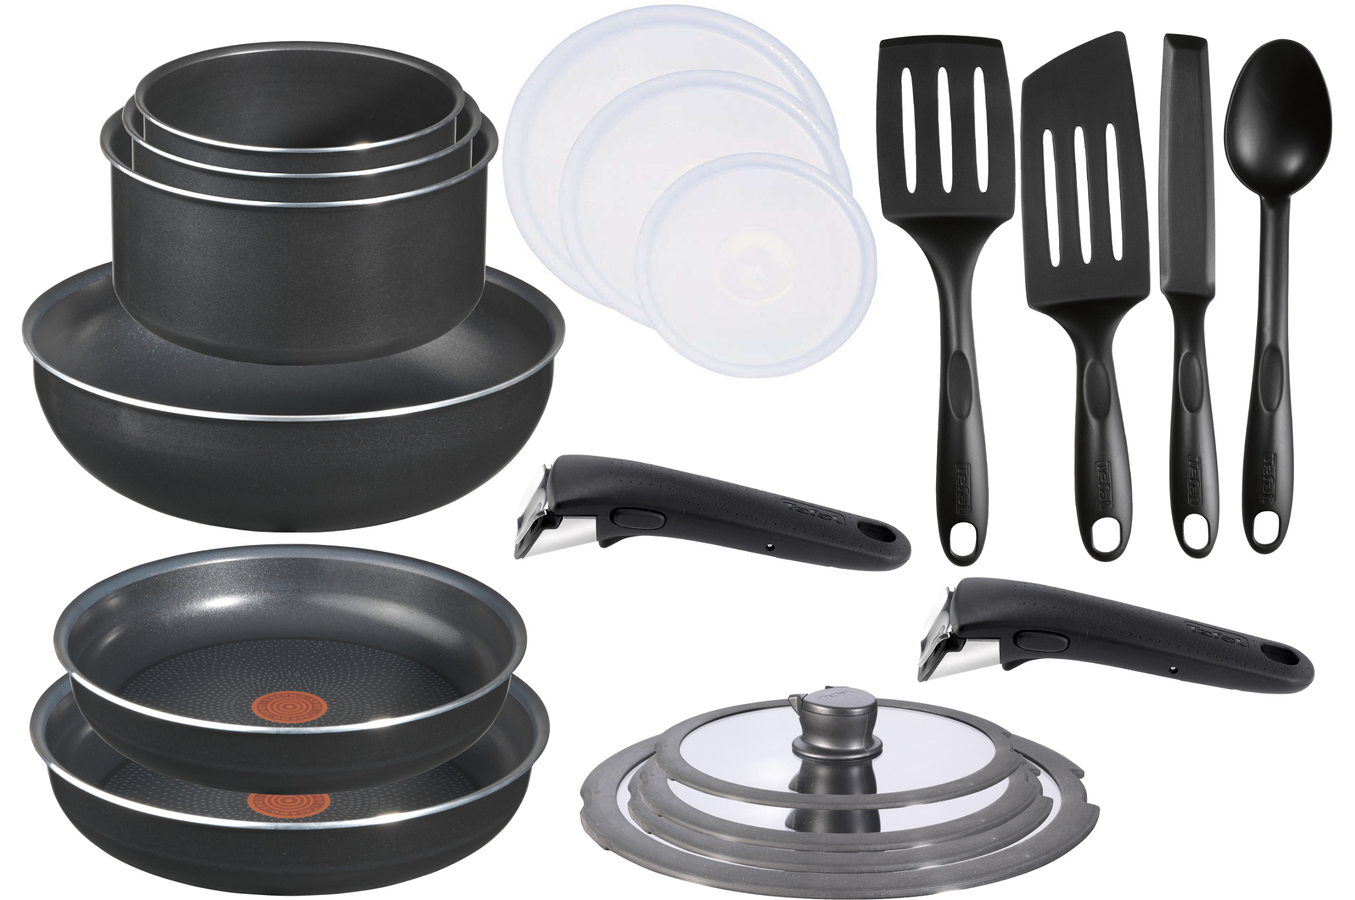 casserole tefal ingenio 5 ptfe 20 pieces l0361405 set tefal l0361405 4151640 darty. Black Bedroom Furniture Sets. Home Design Ideas